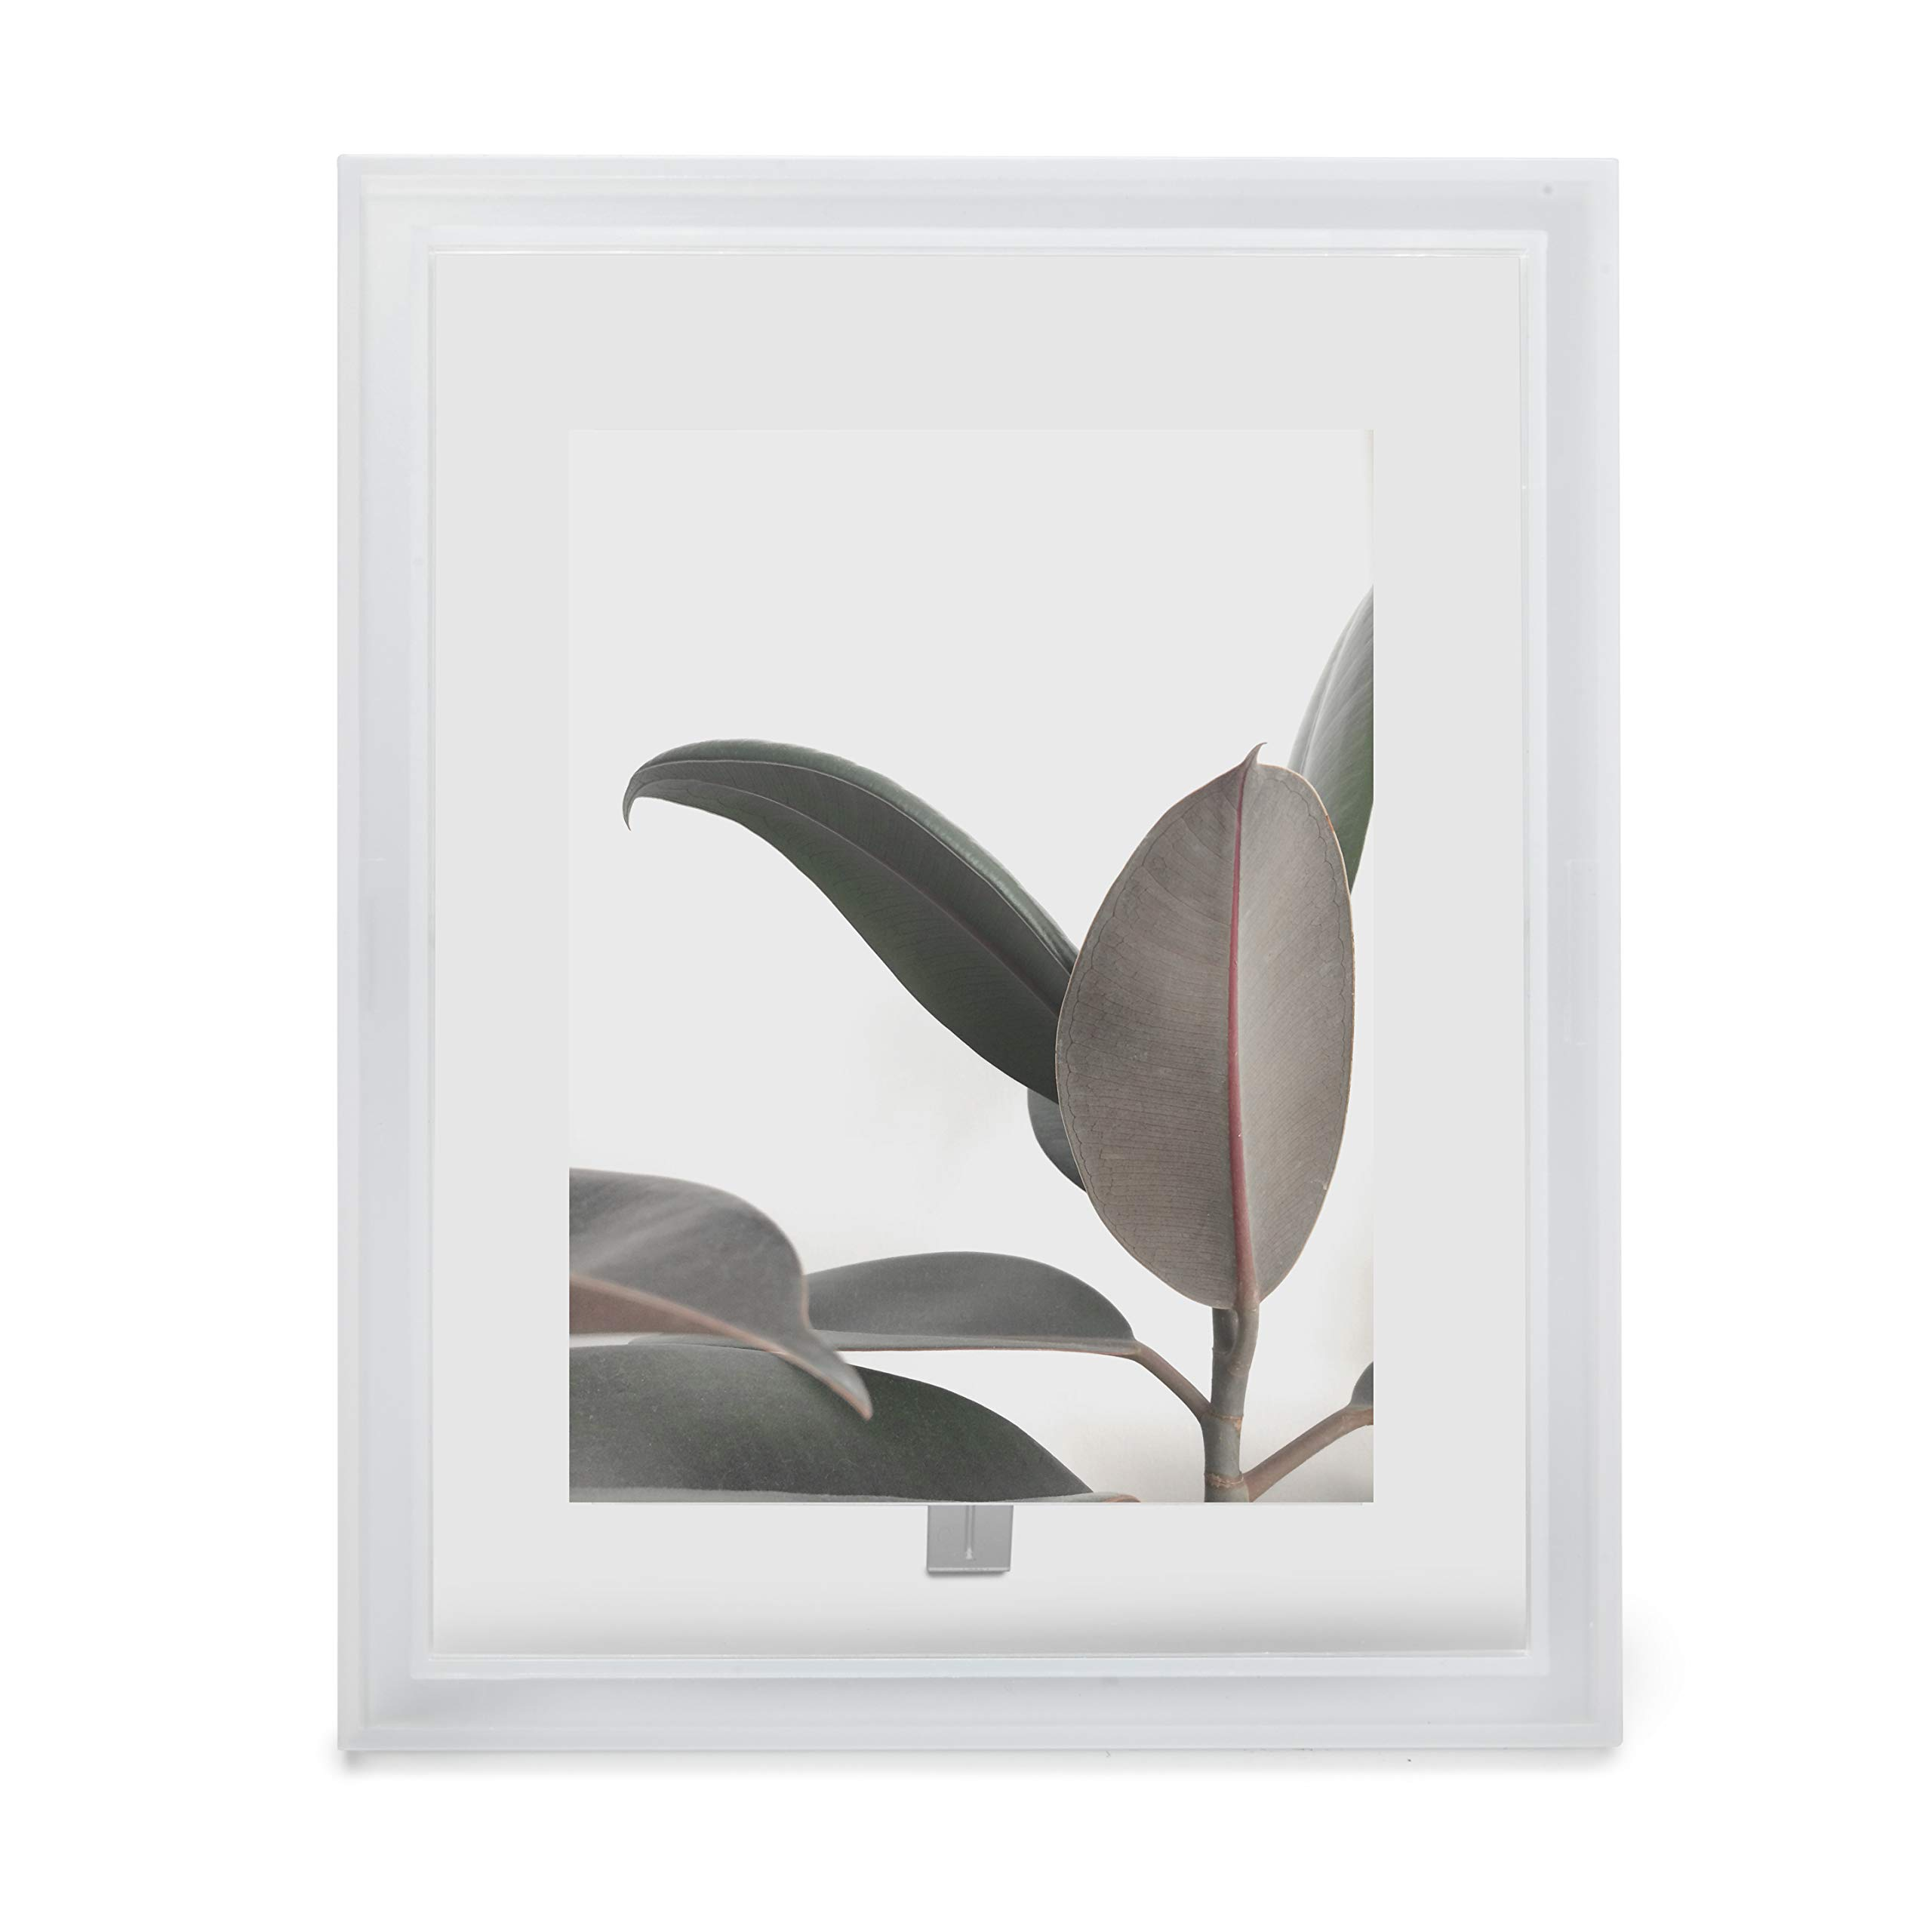 Umbra Lucent 5 x 7 Opaque, Float Photos or Display Edge, Acrylic Frame, Clear